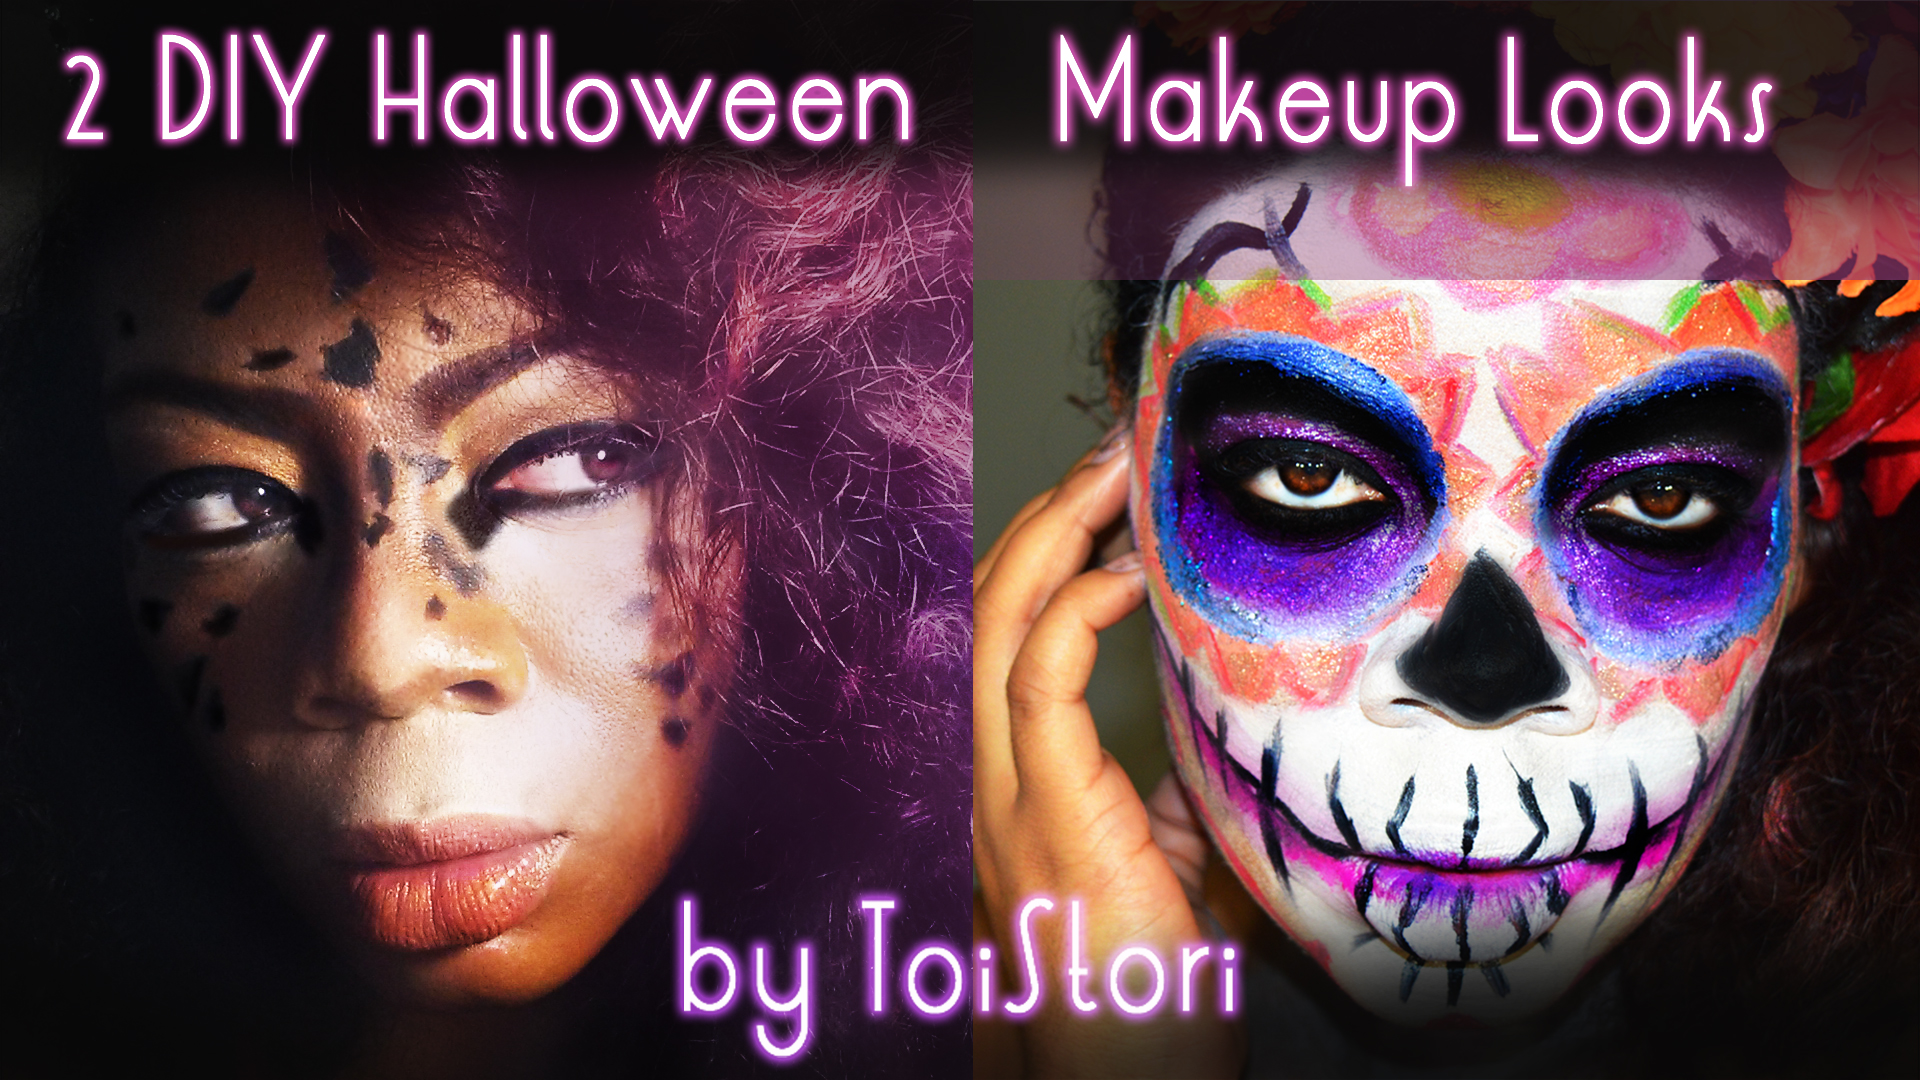 Diy halloween makeup looks t o i house by toi powell for Skone tattooed eyeliner